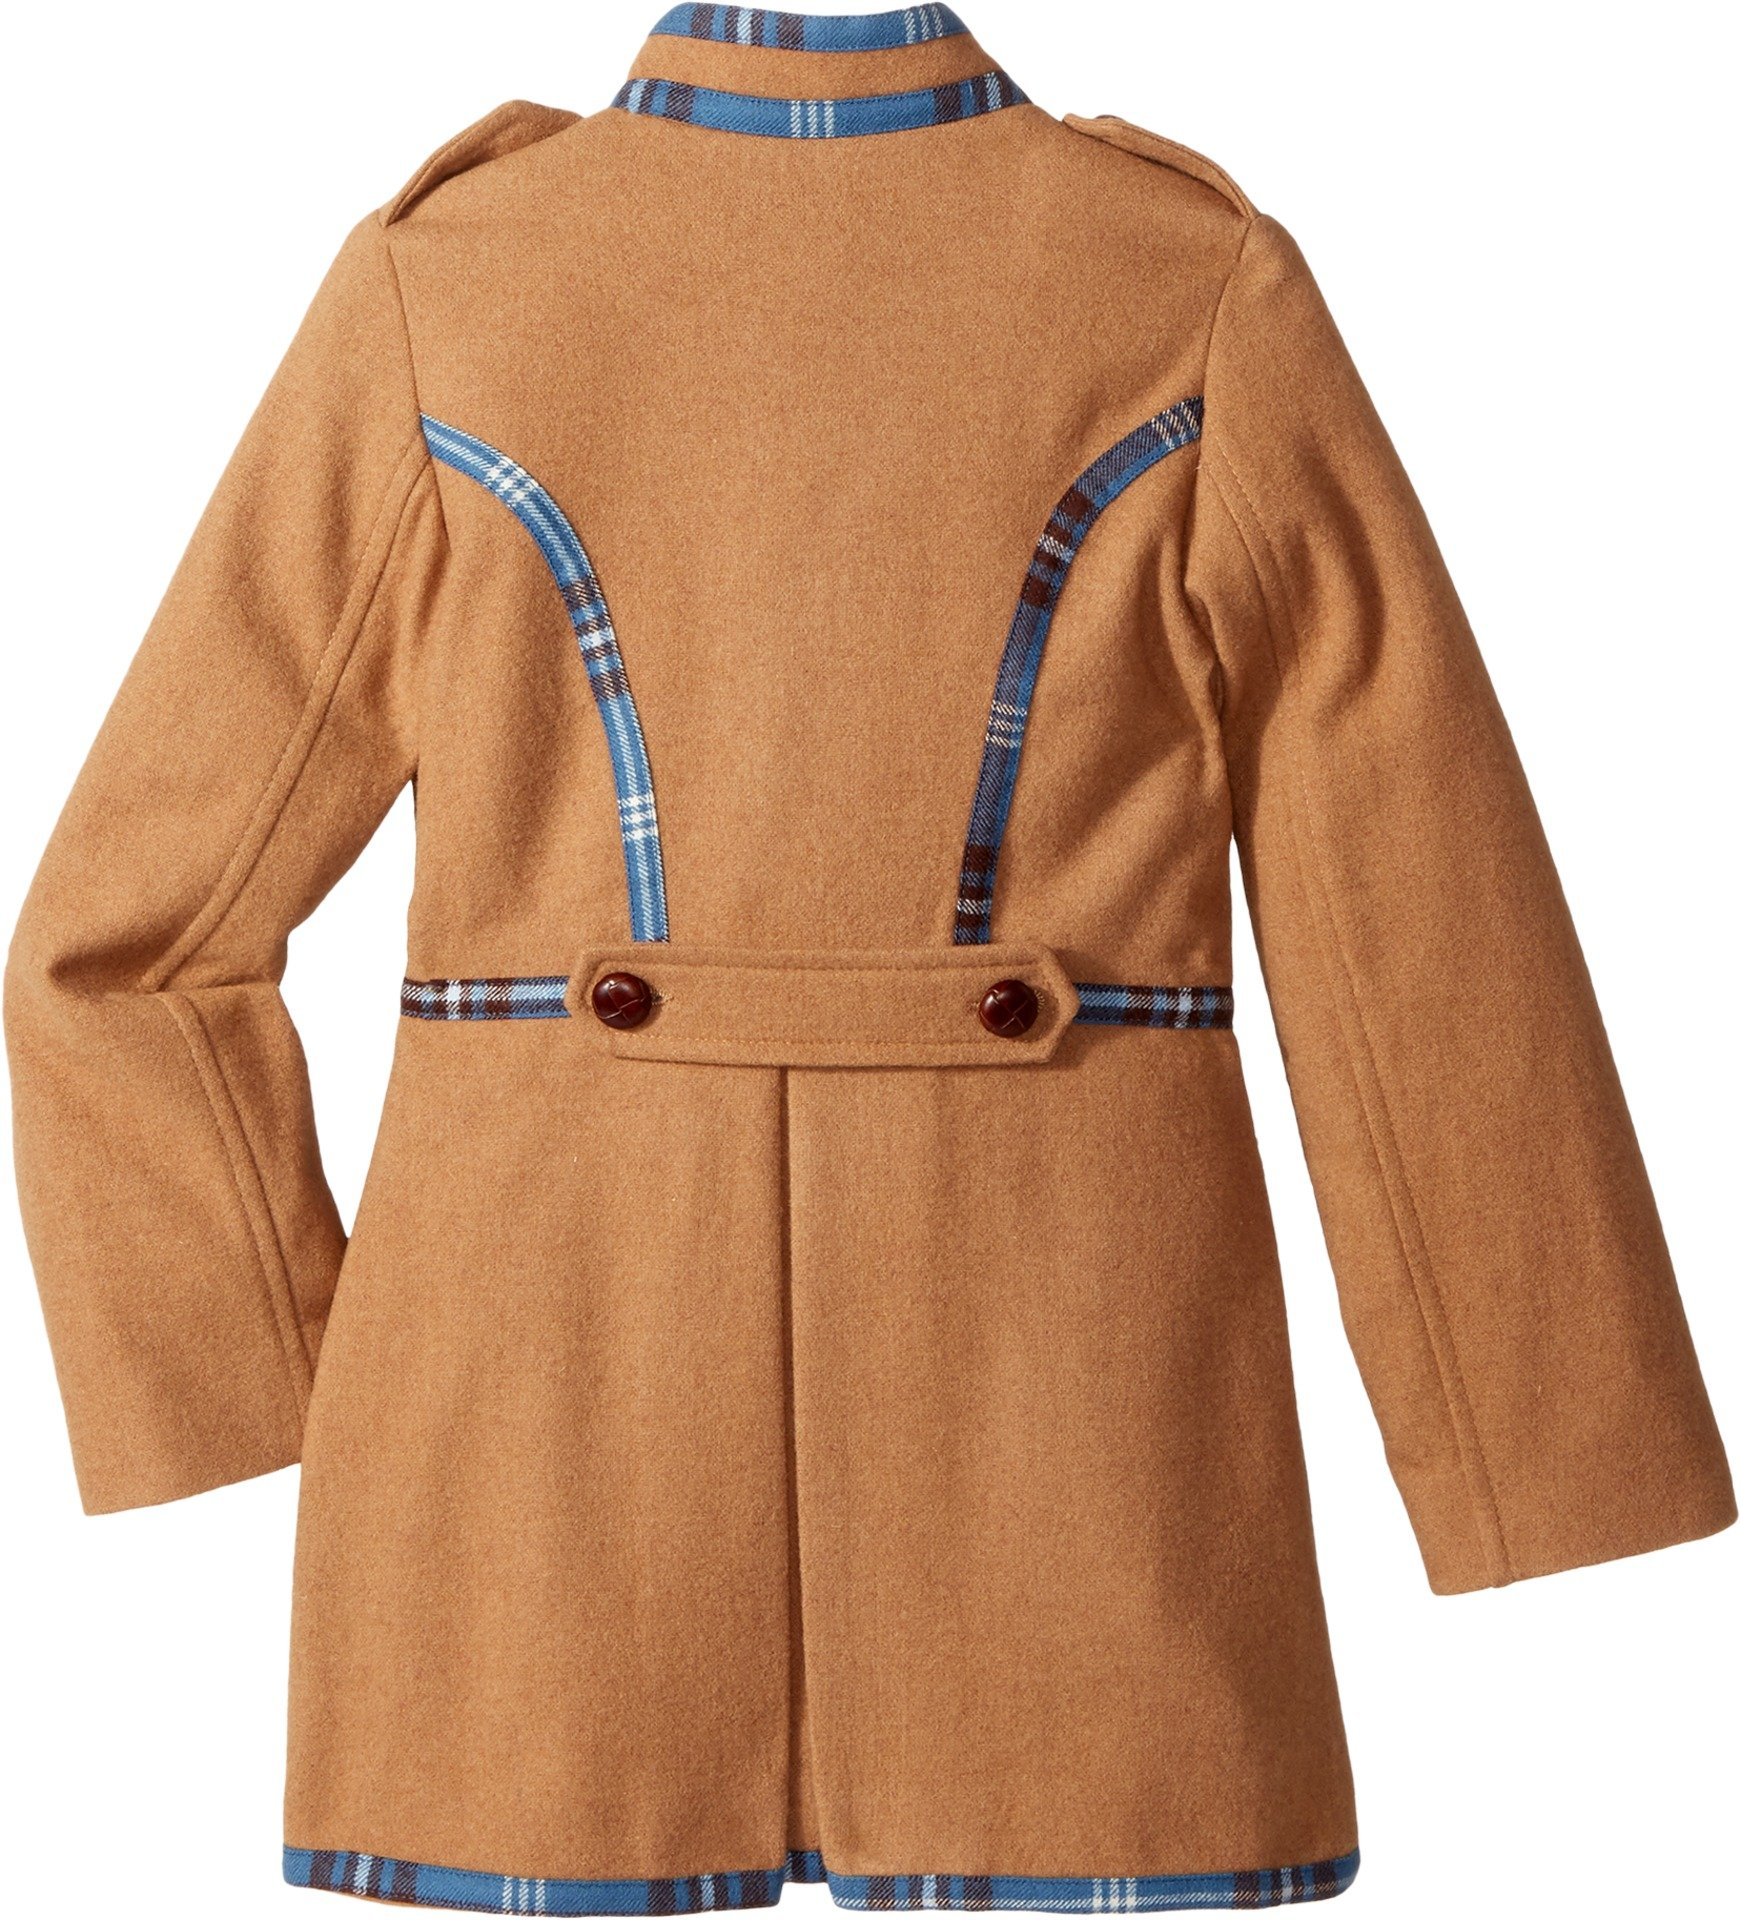 Oscar de la Renta Childrenswear Baby Girl's Wool Drill Coat (Toddler/Little Kids/Big Kids) Camel 14 (Big Kids)